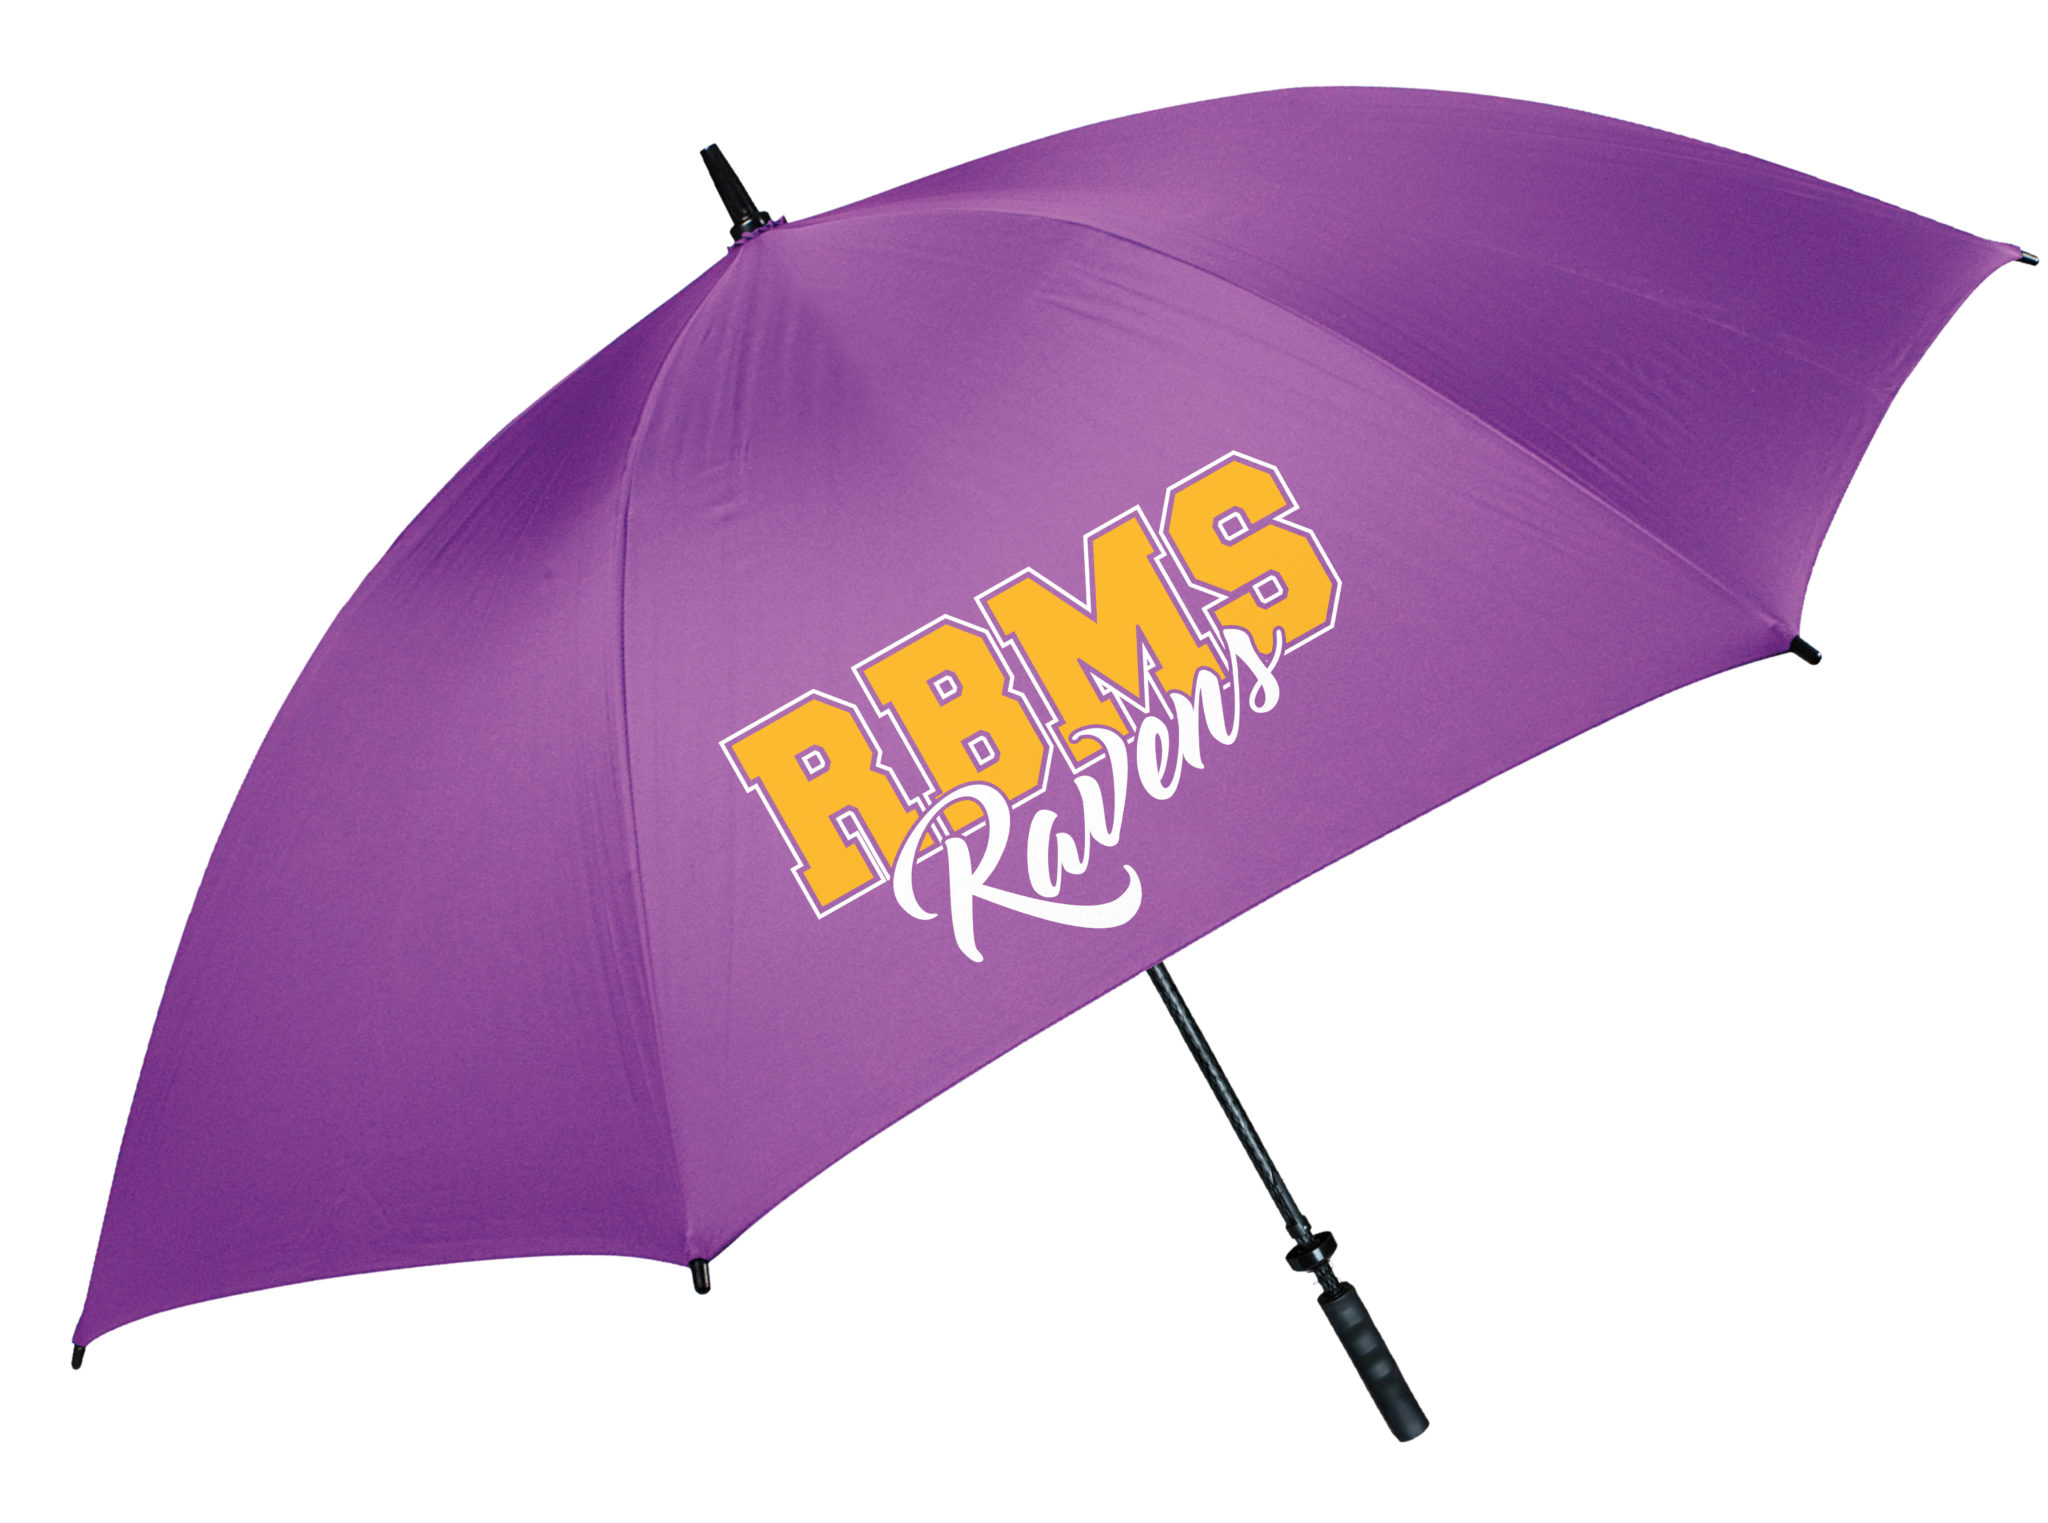 Loudoun-va-custom-brand-product-umbrella